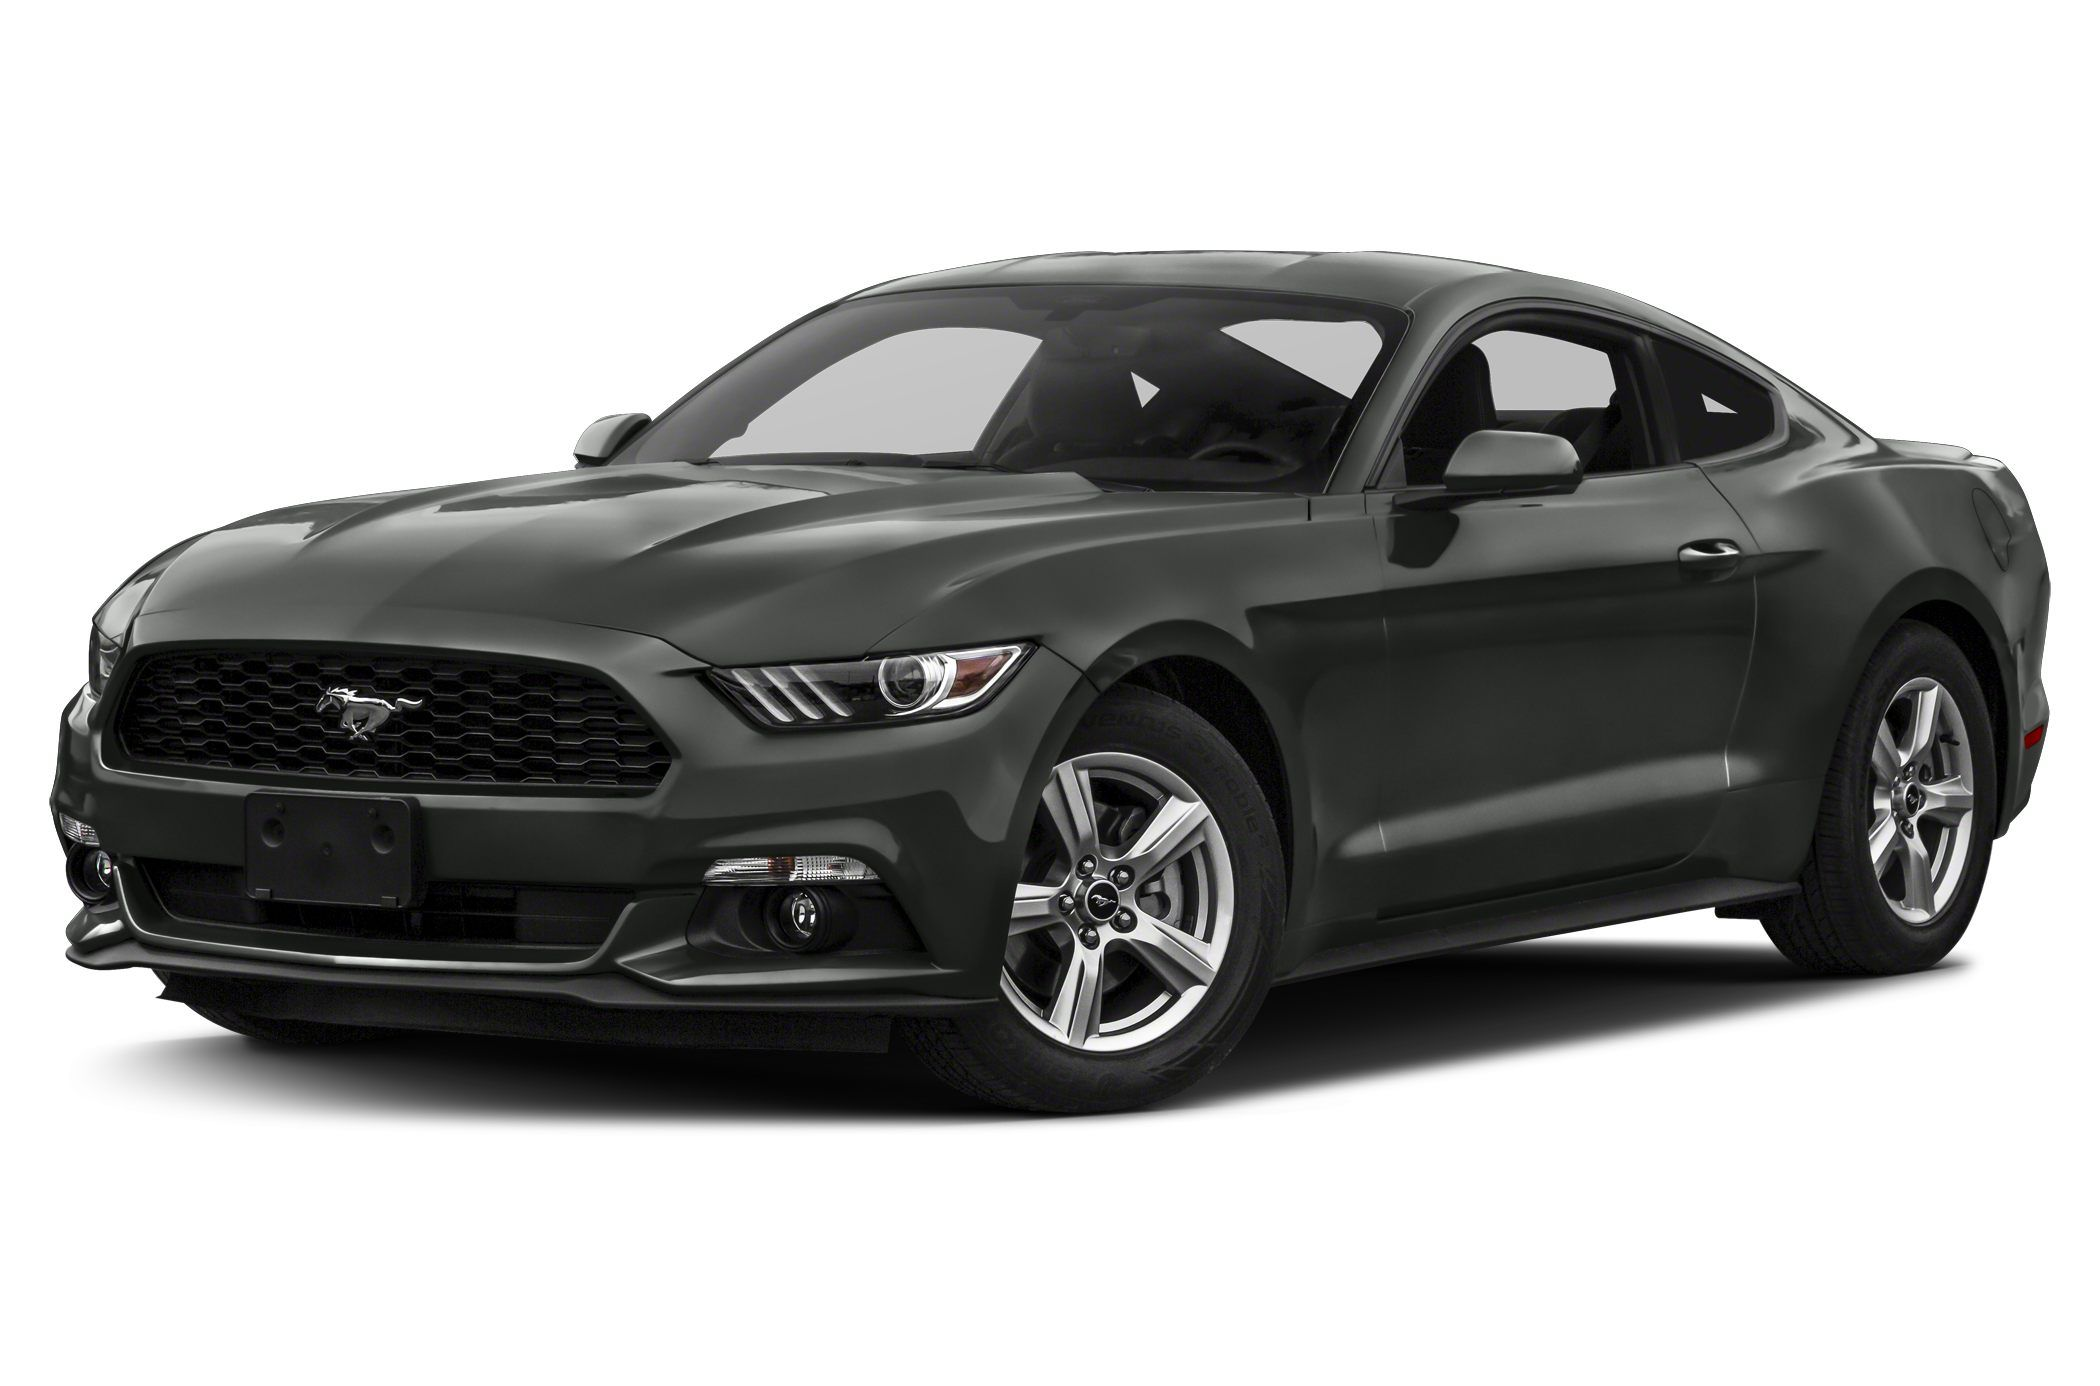 Ford Mustang News Photos And Buying Information Autoblog Mustang